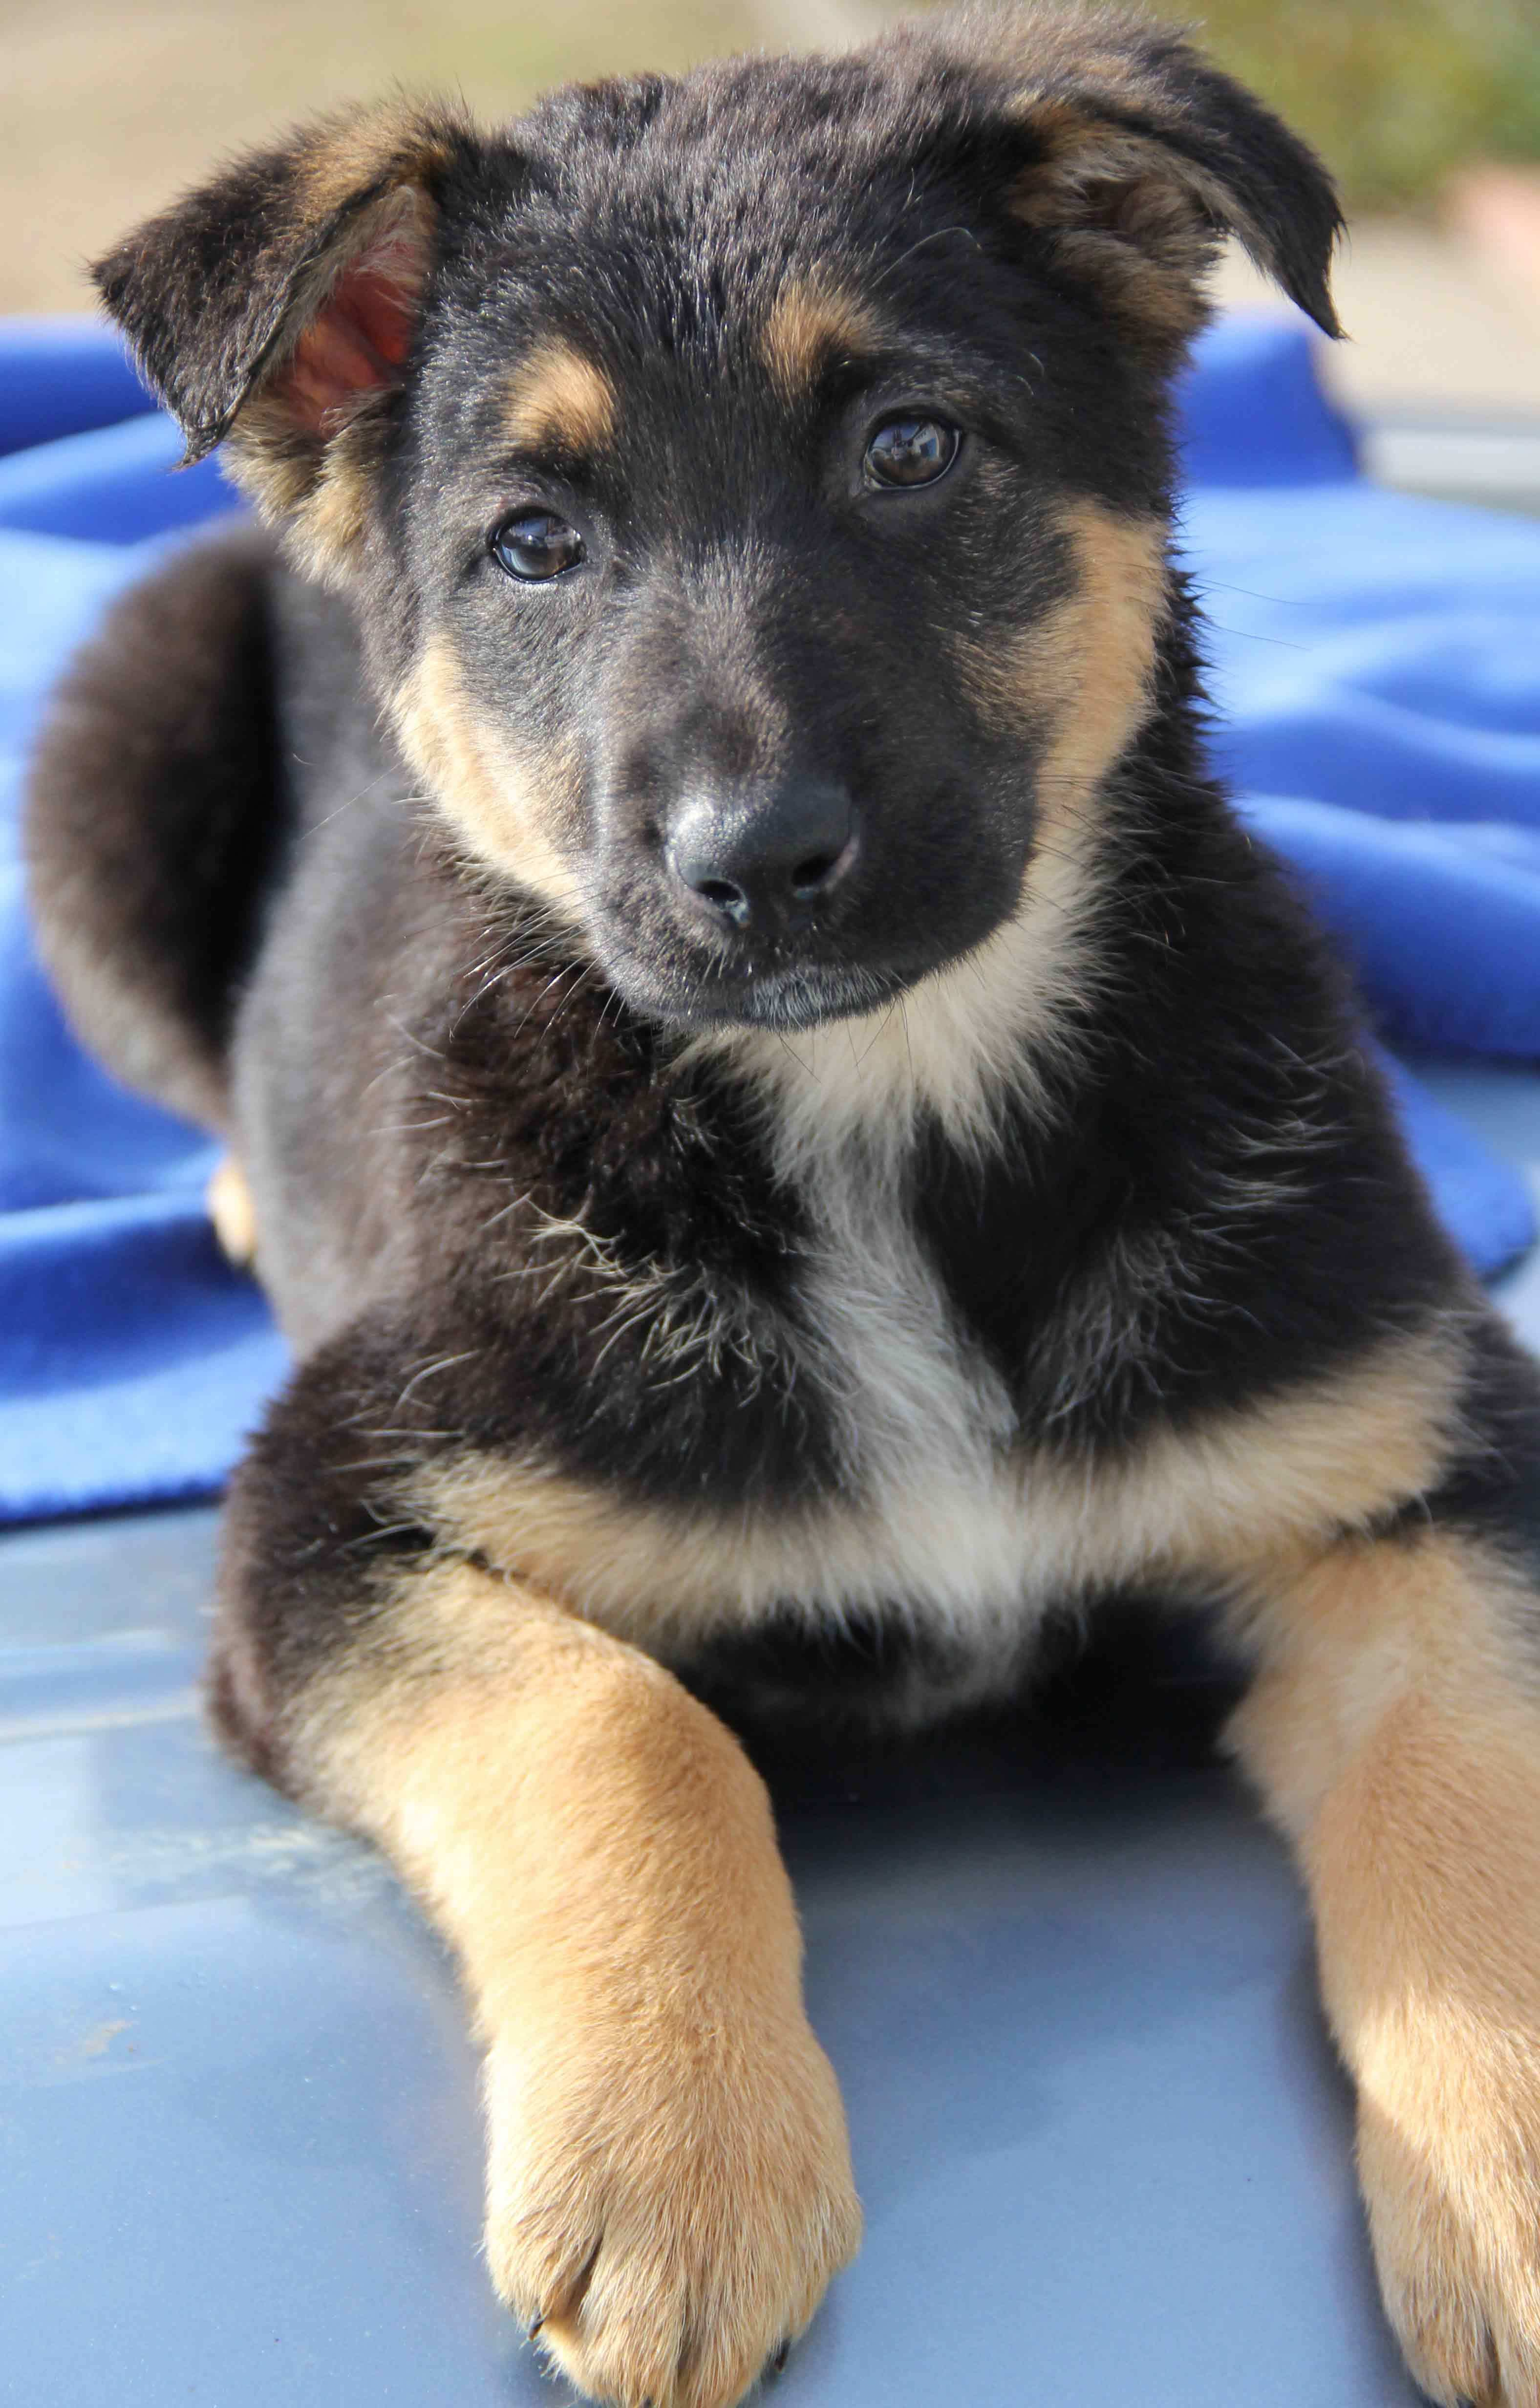 Blitzen Is An Adoptable German Shepherd Dog Searching For A